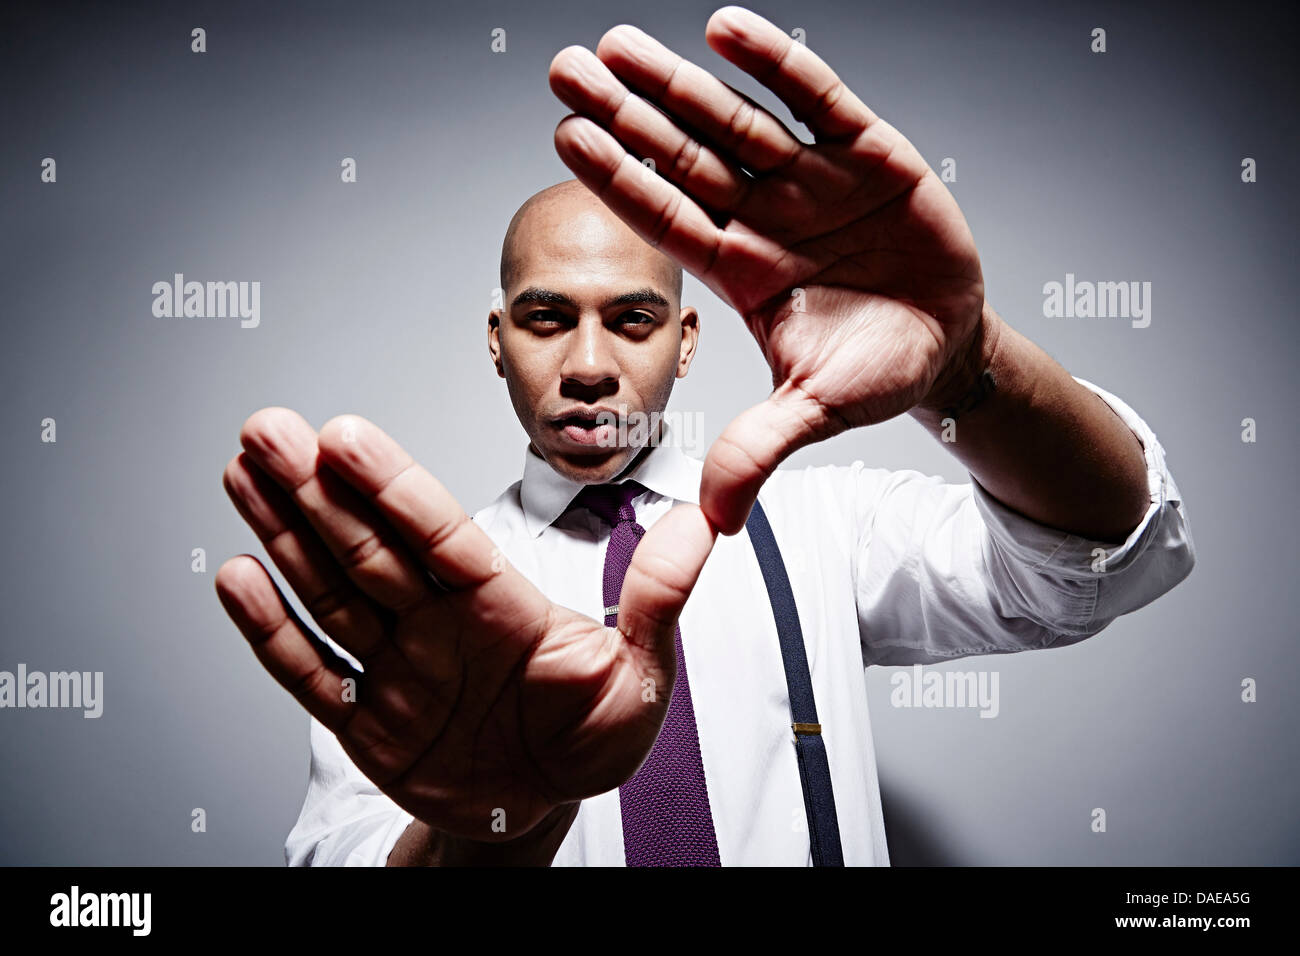 Studio portrait of businessman with exaggerated hands - Stock Image